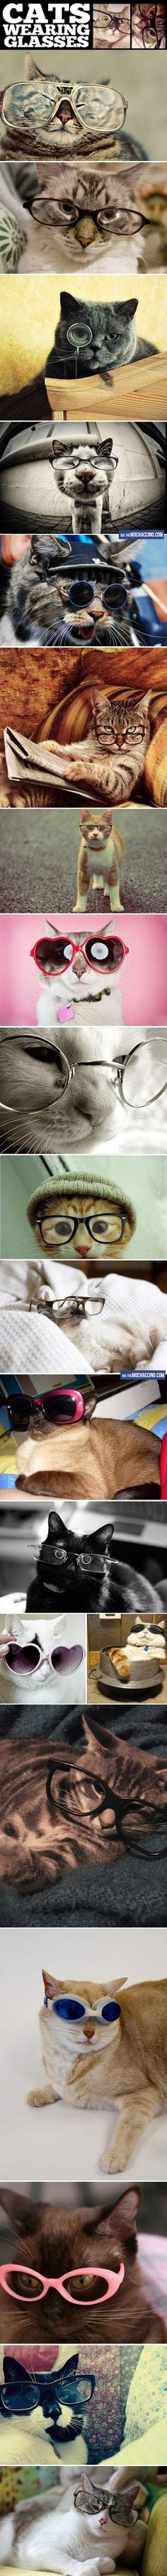 Cats wearing glasses.